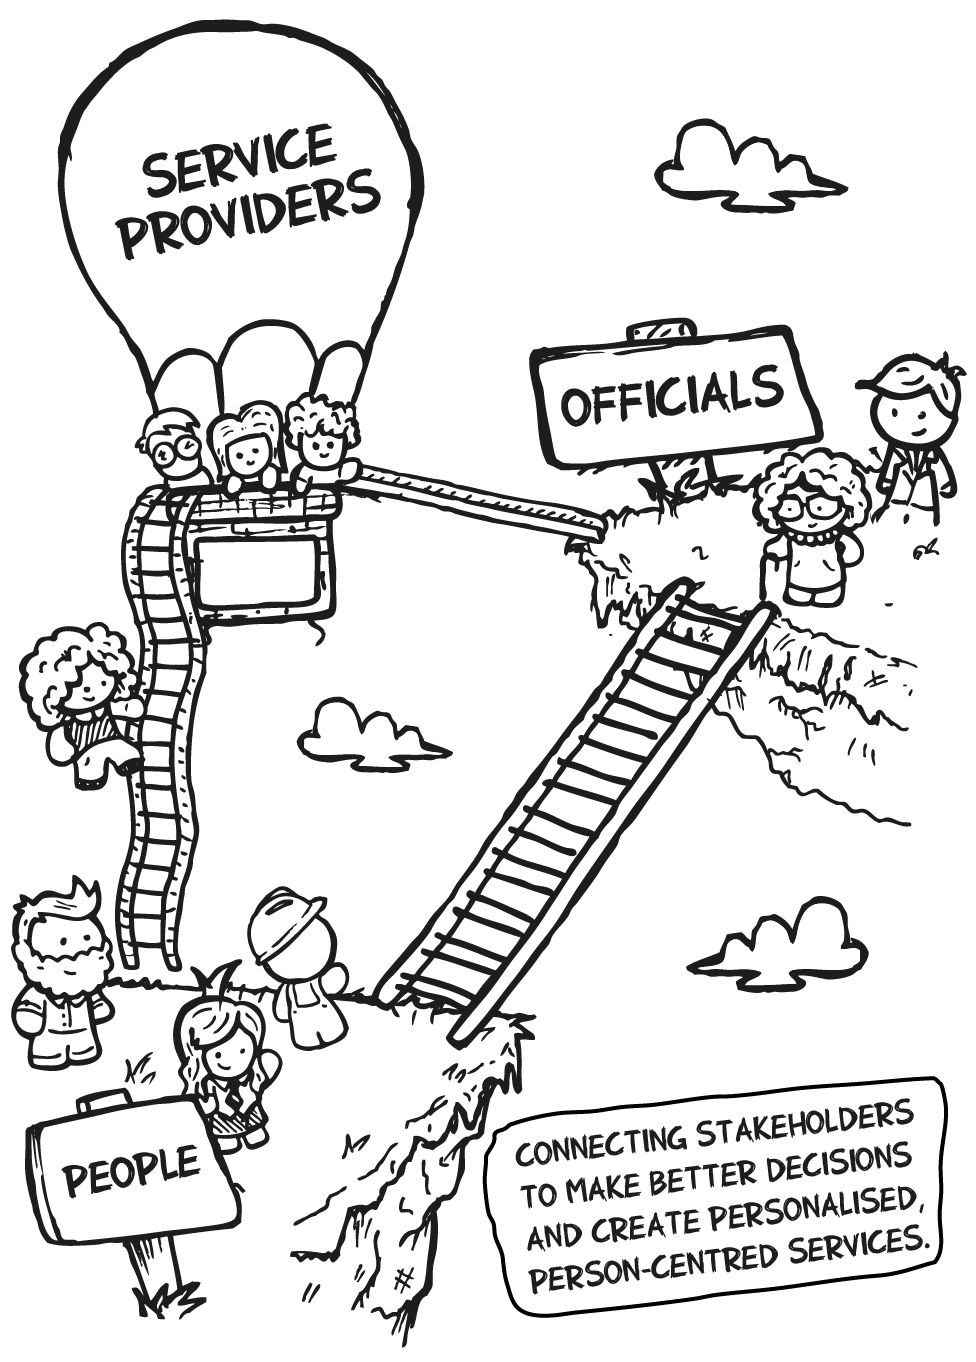 Connecting Service providers, Officials and People